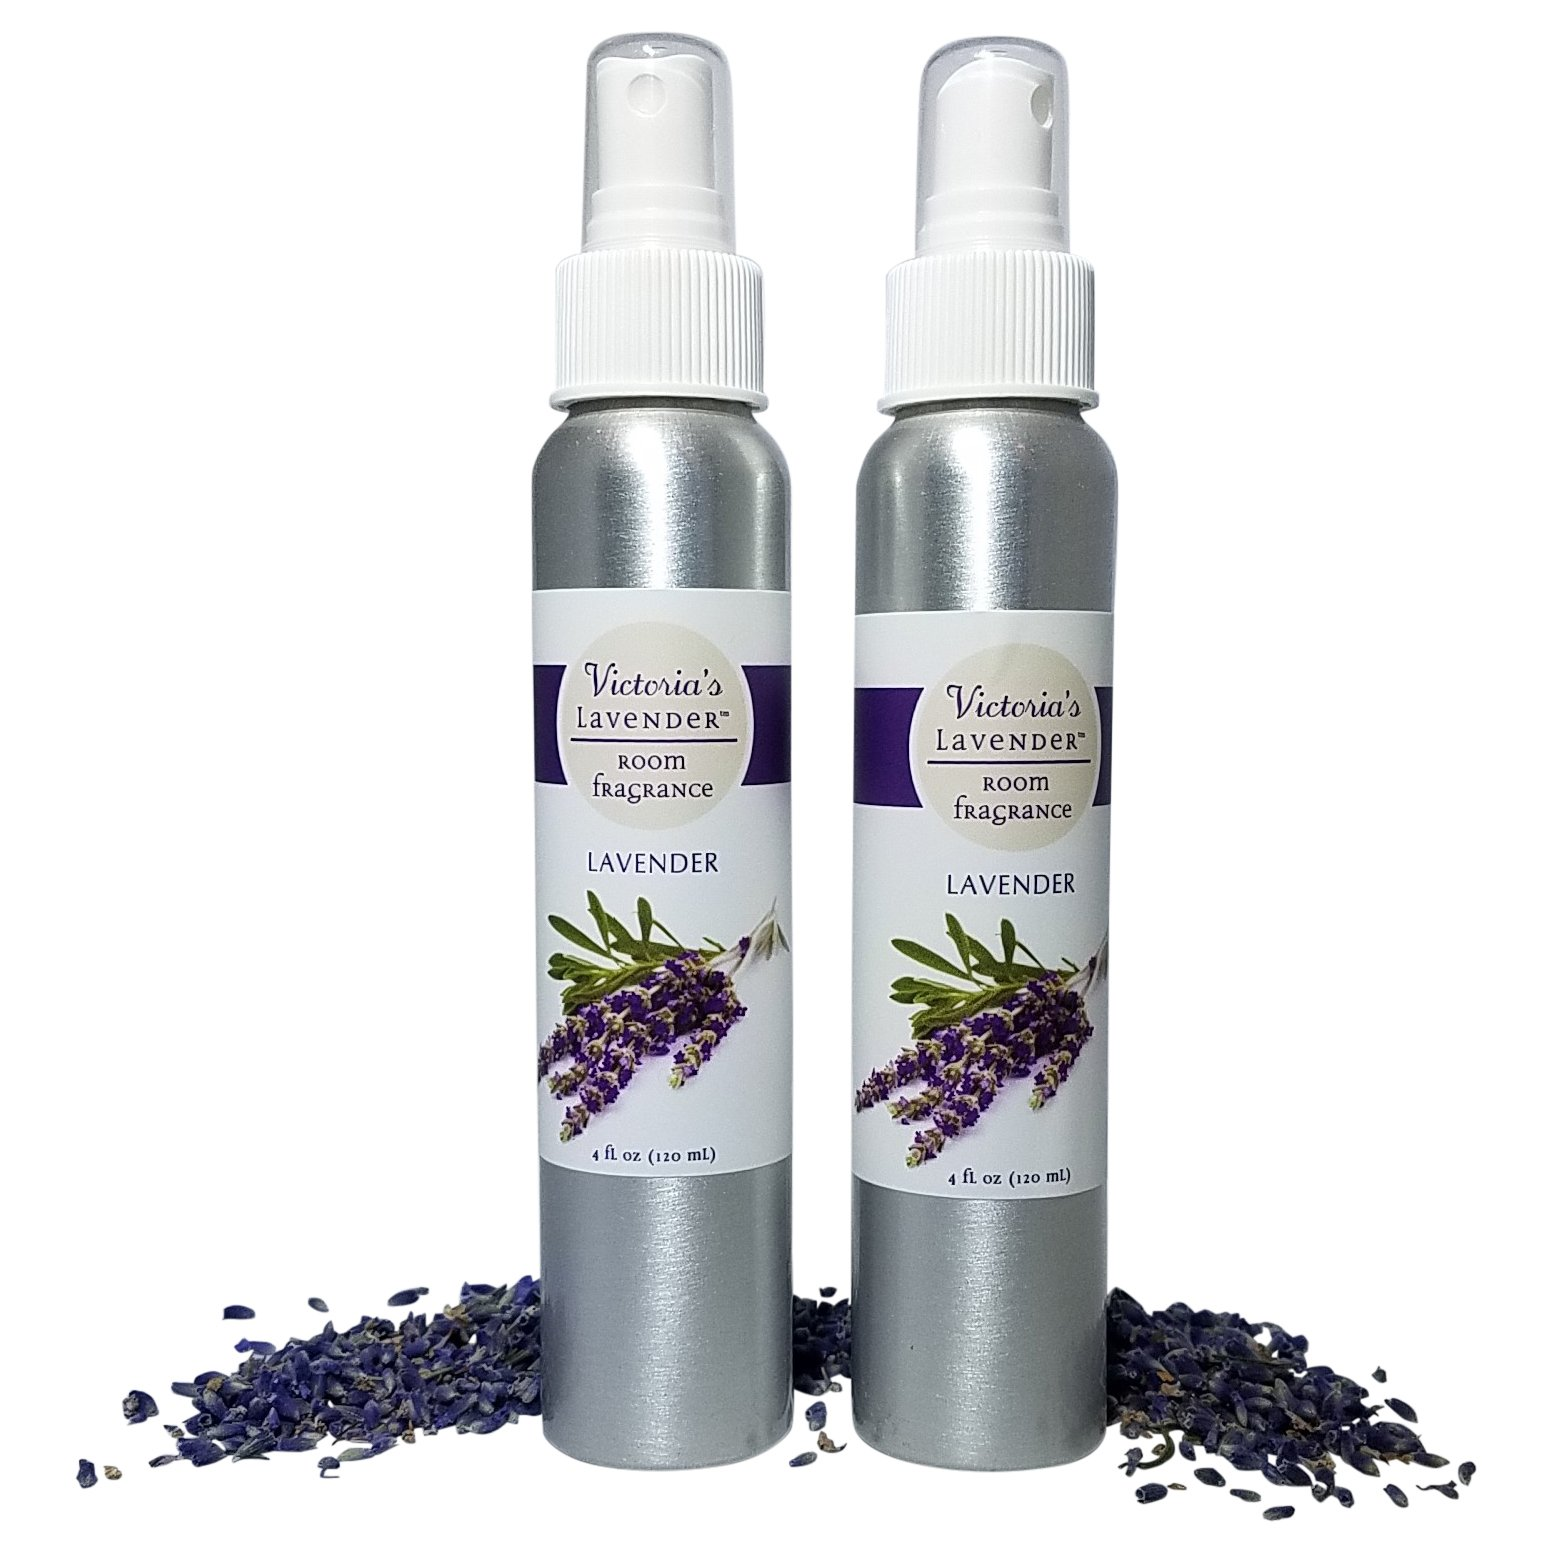 Victoria's Lavender All Natural Lavender Room Fragrance Home Spray 2 Pack 100% Pure Lavender Essential Oil Air Freshener Odor Eliminator Handmade in Oregon